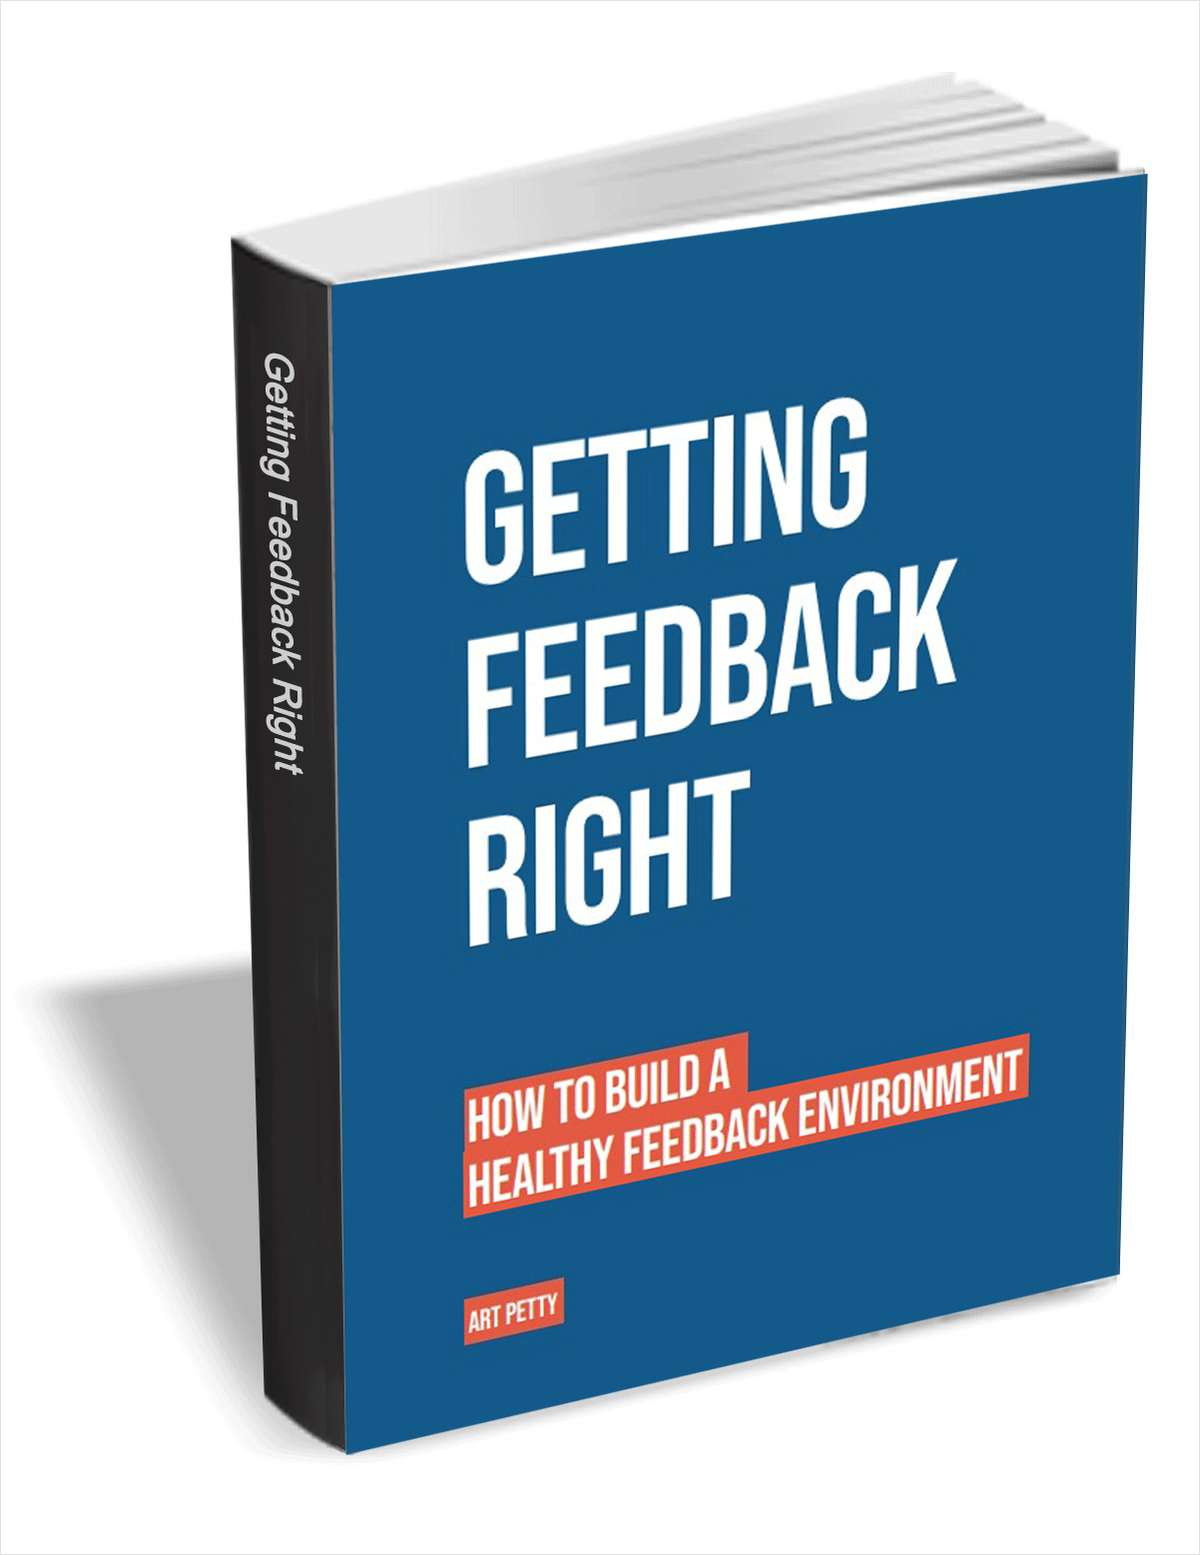 Getting Feedback Right - How to Build a Healthy Feedback Environment